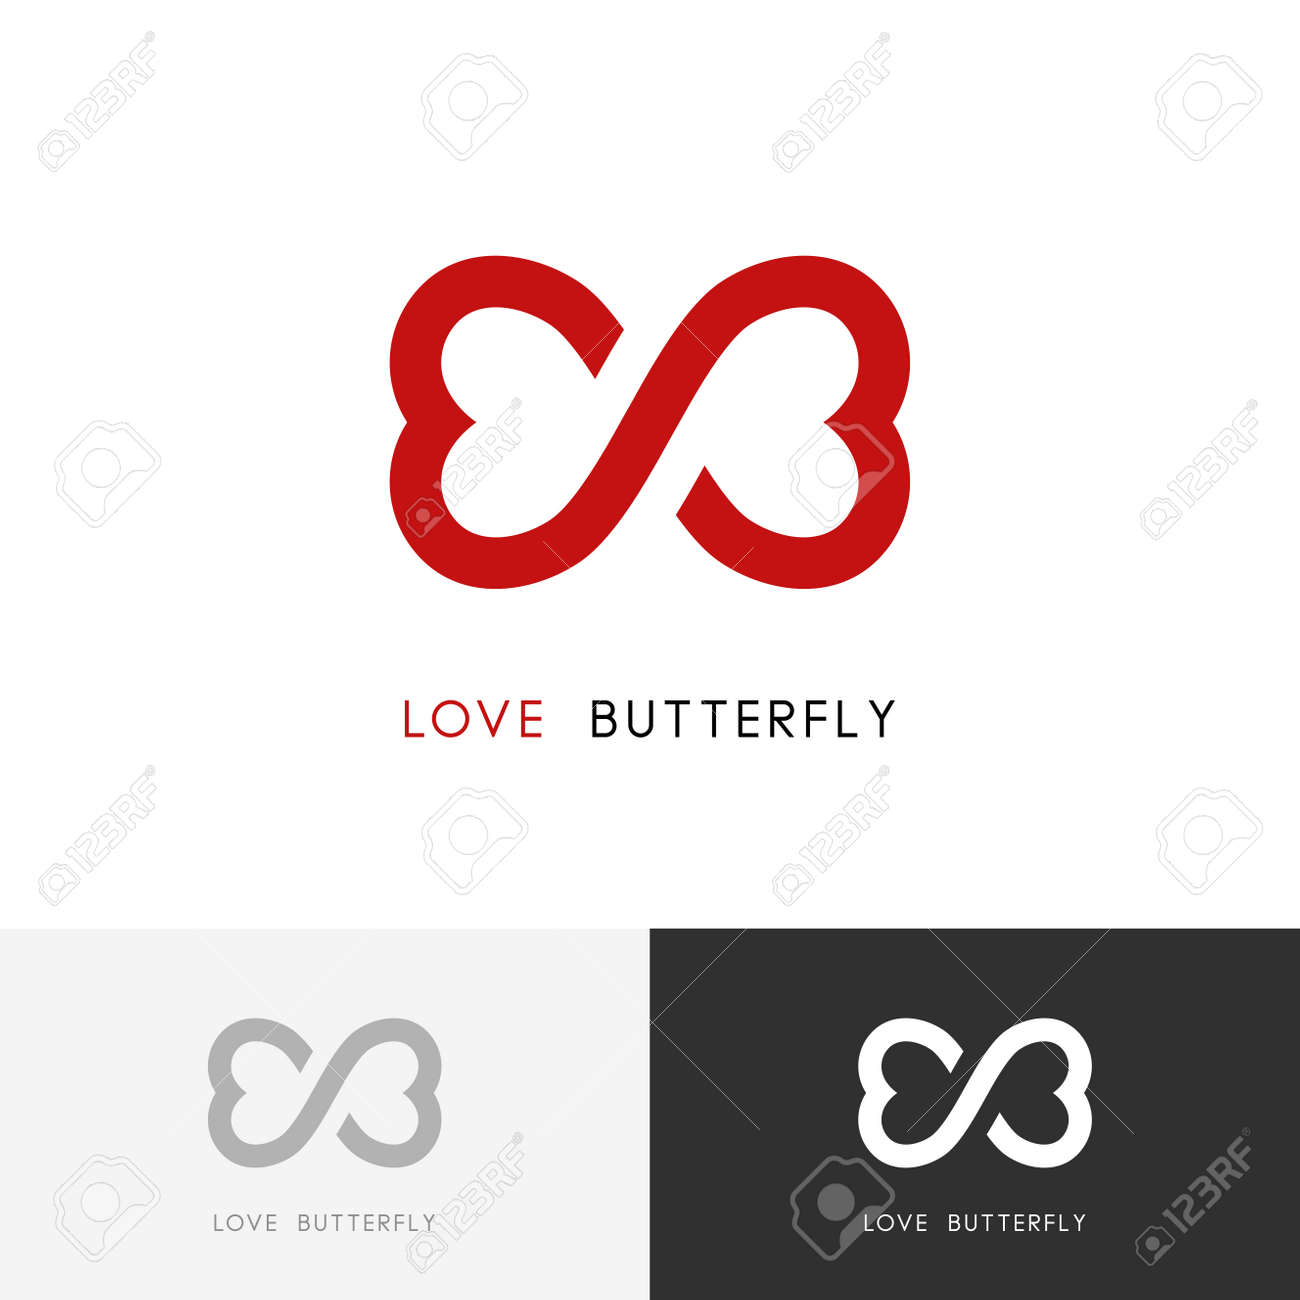 Love butterfly logo two red hearts or wings of the moth symbol love butterfly logo two red hearts or wings of the moth symbol valentine biocorpaavc Gallery